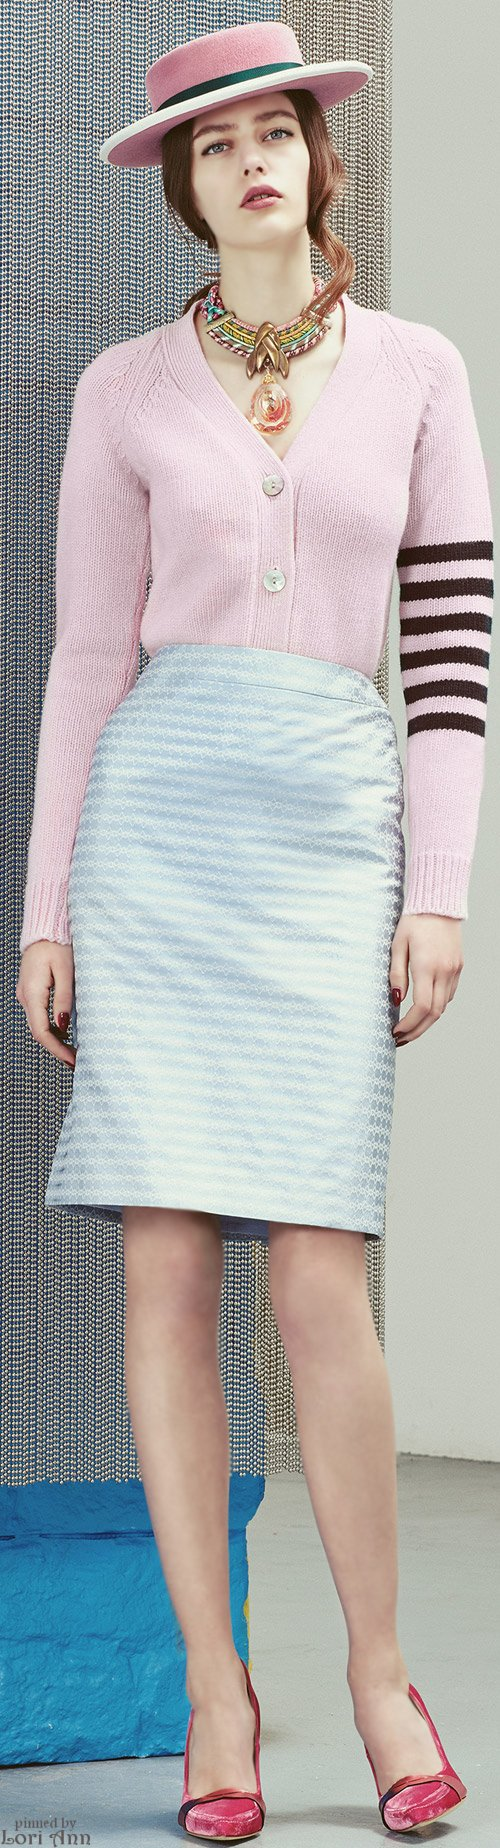 Alexander Lewis Pre-Fall 2015 women fashion outfit clothing style apparel @roressclothes closet ideas